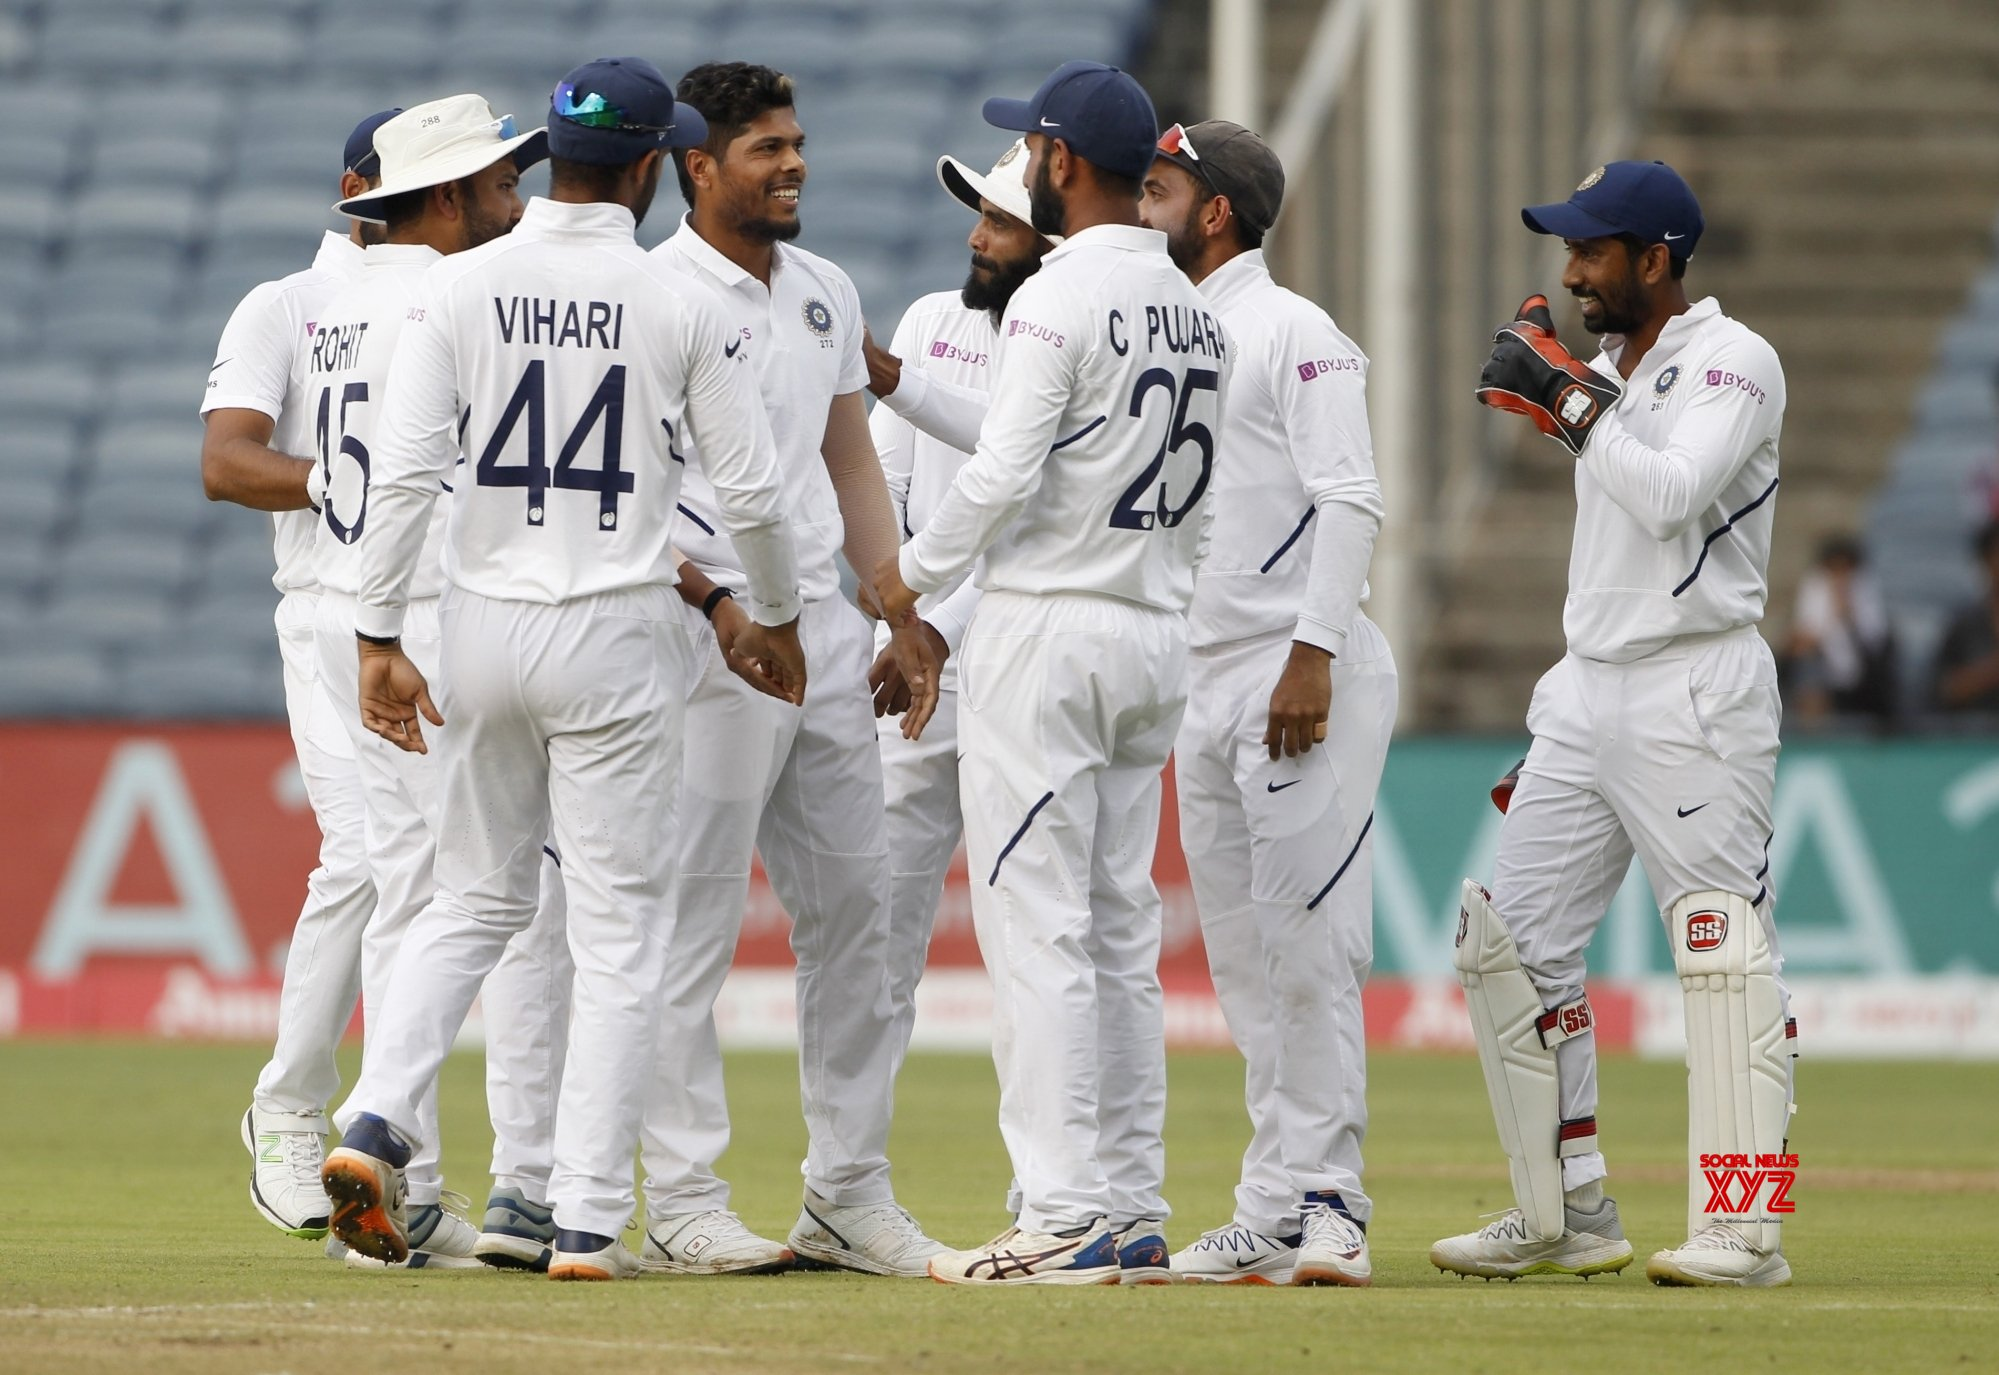 Pune: 2nd Test - India Vs South Africa - Day 2 (Batch - 20) #Gallery